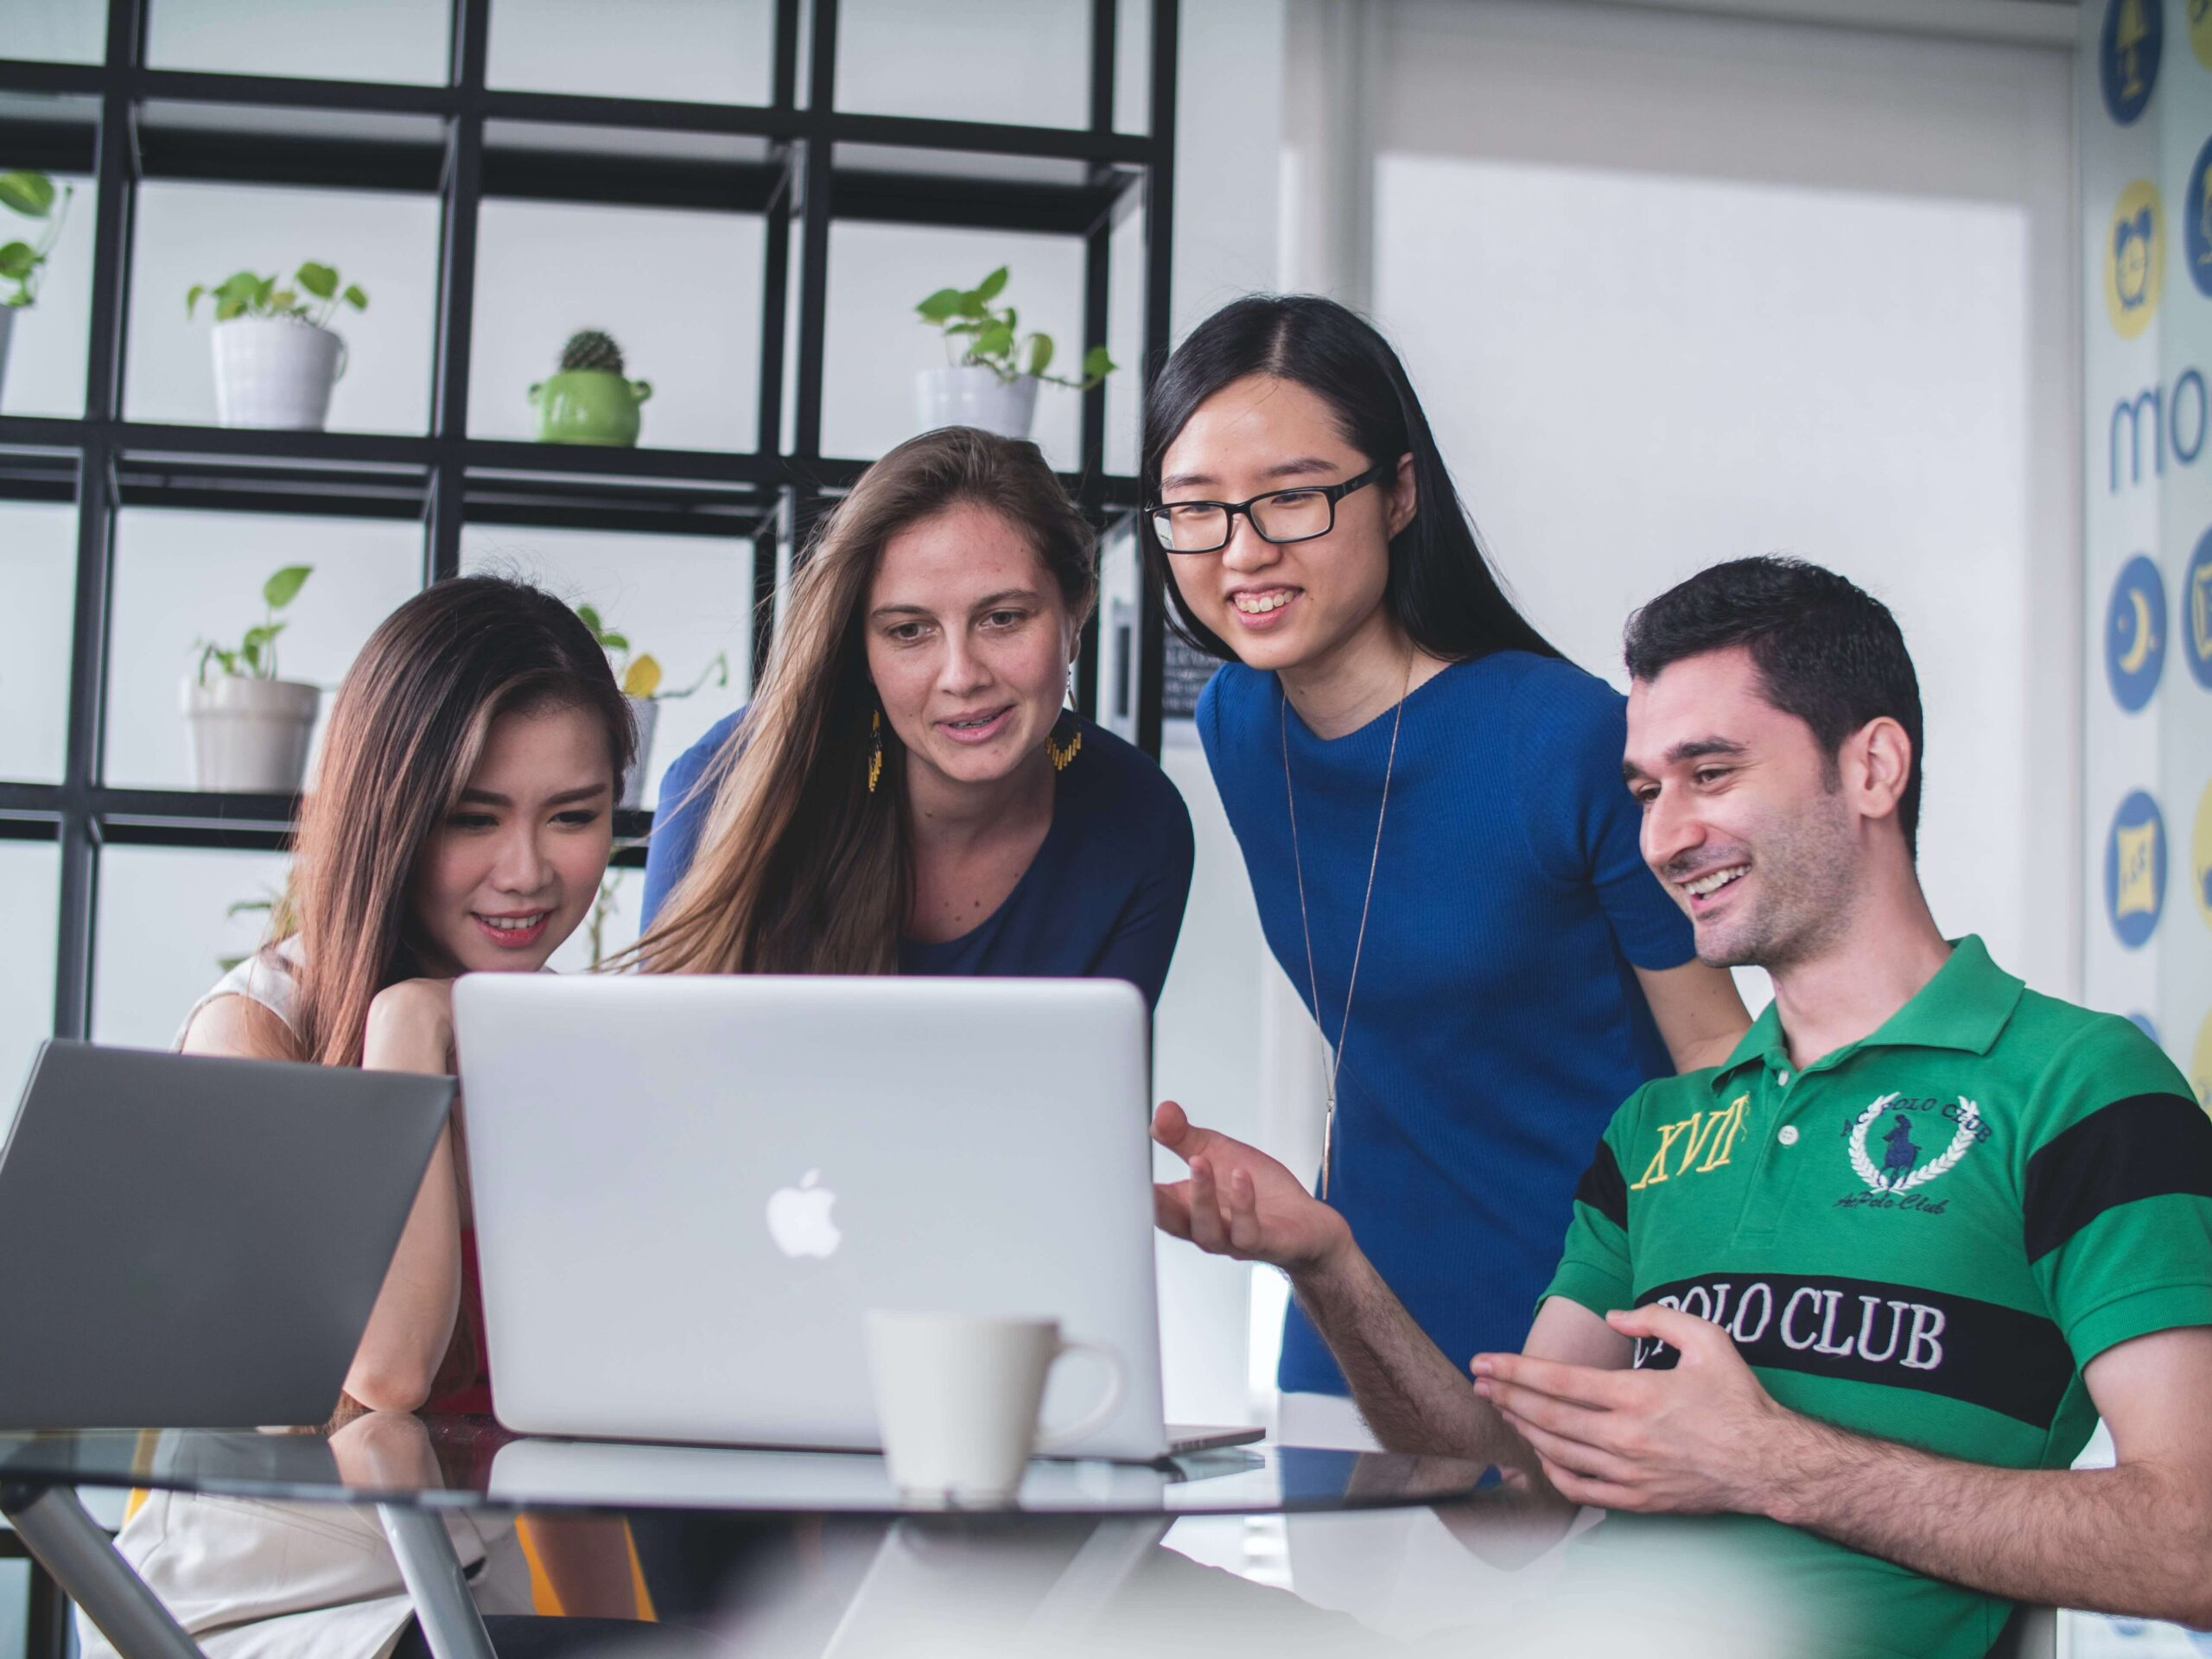 A group of people are doing an engaging e-learning course